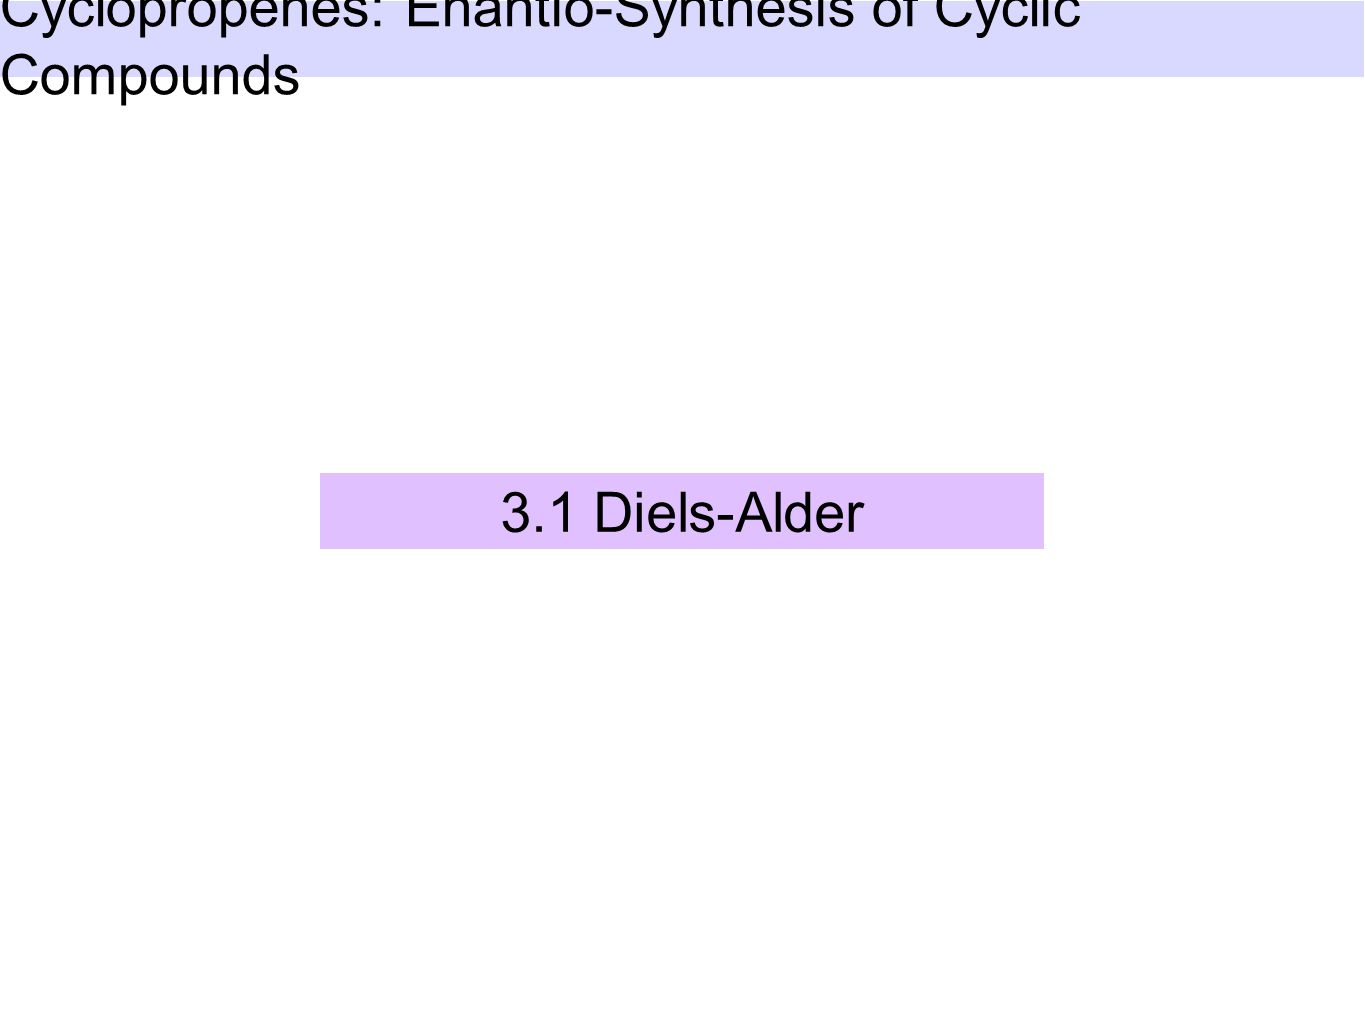 3.1 Diels-Alder Cyclopropenes: Enantio-Synthesis of Cyclic Compounds